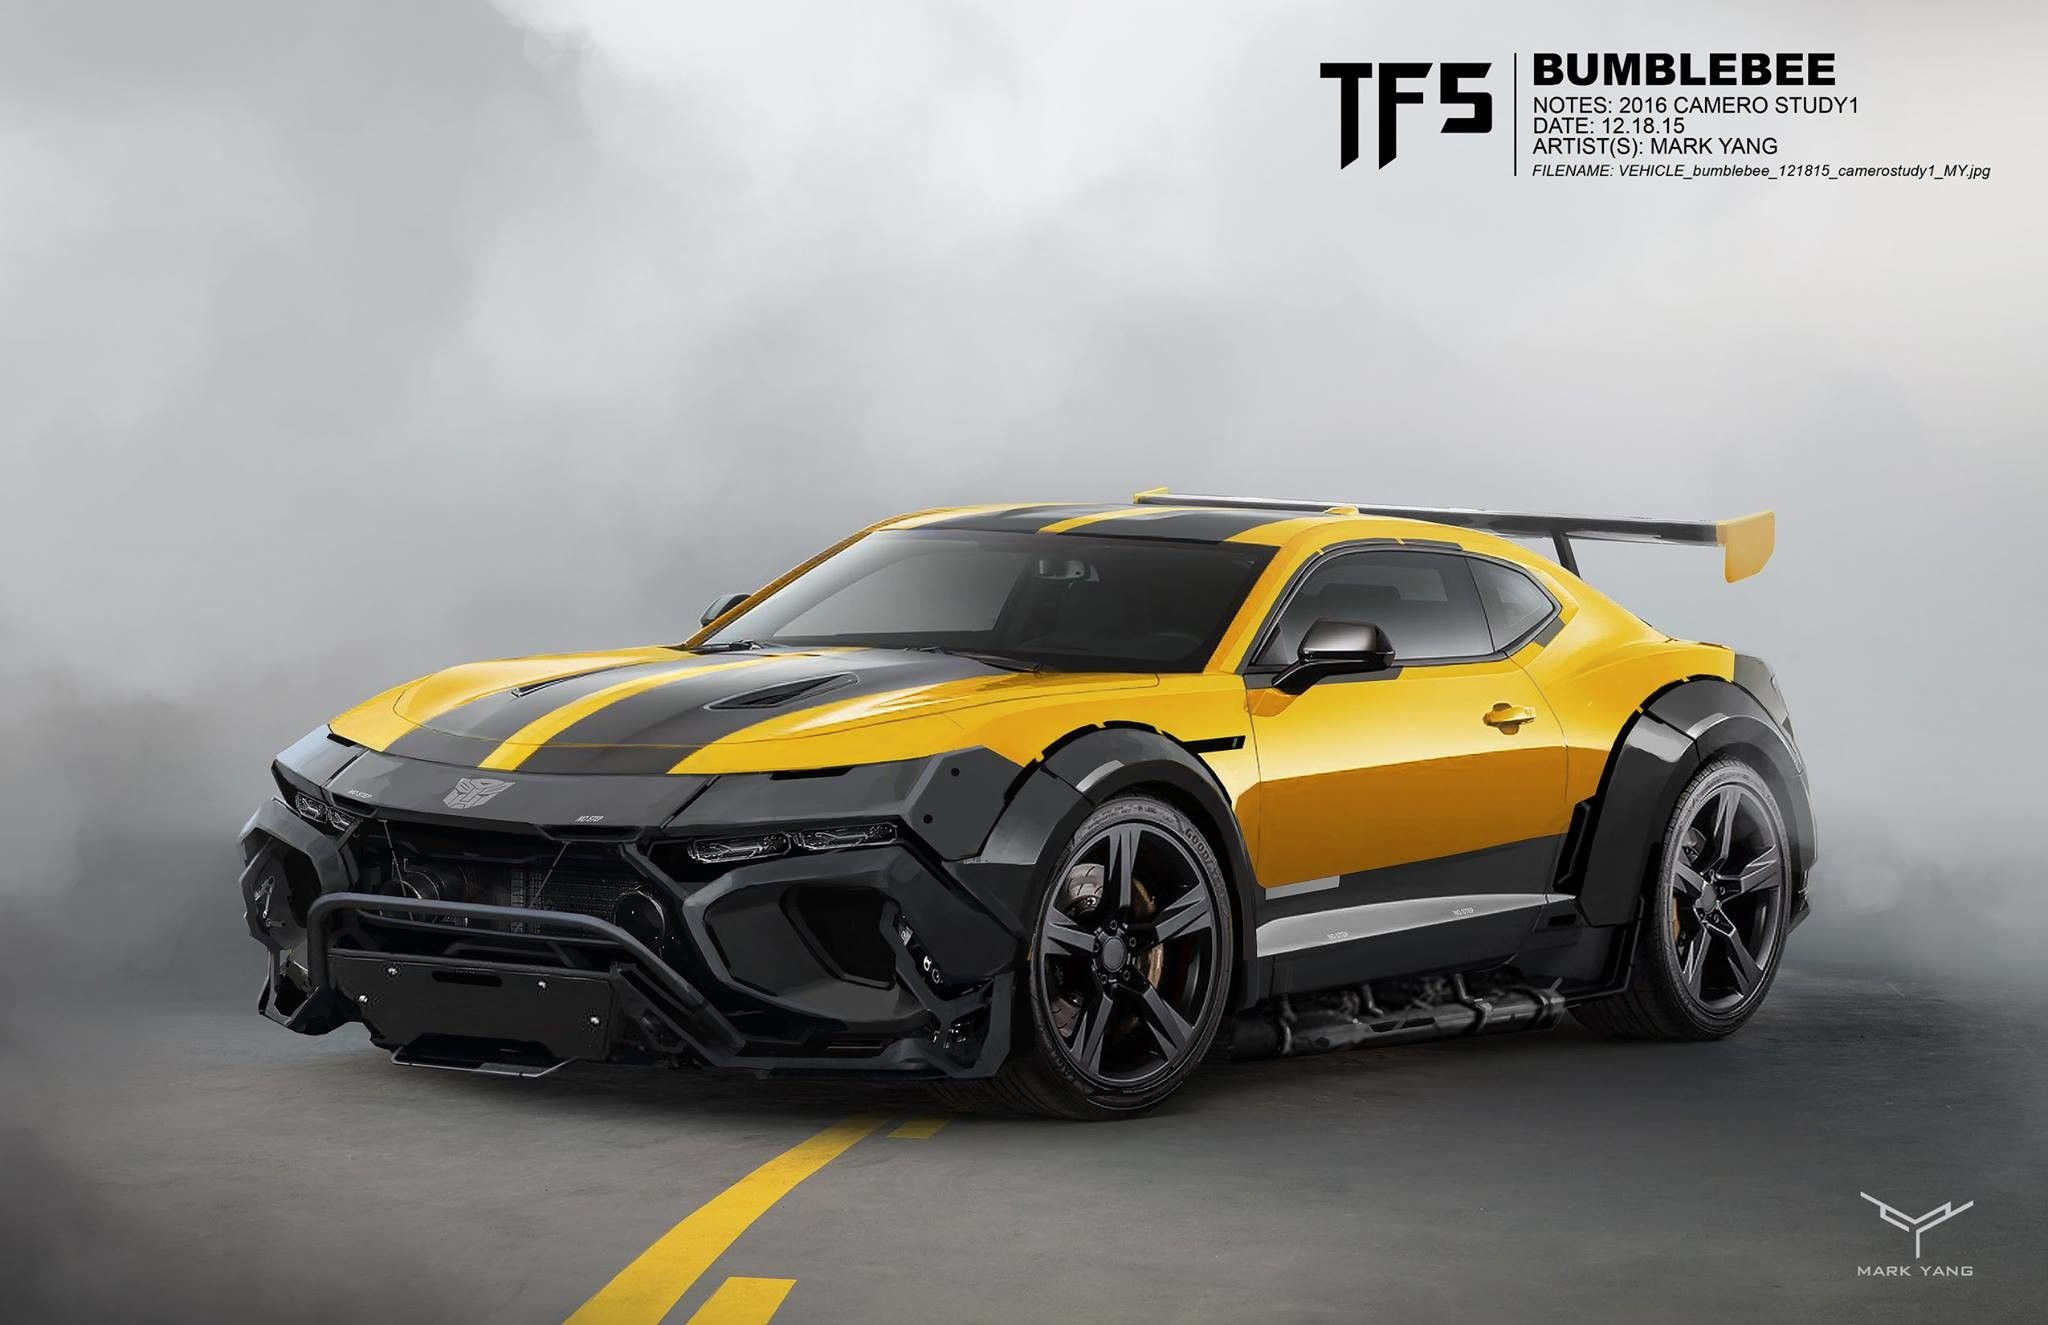 Transformers Cars Wallpapers Top Free Transformers Cars Backgrounds Wallpaperaccess